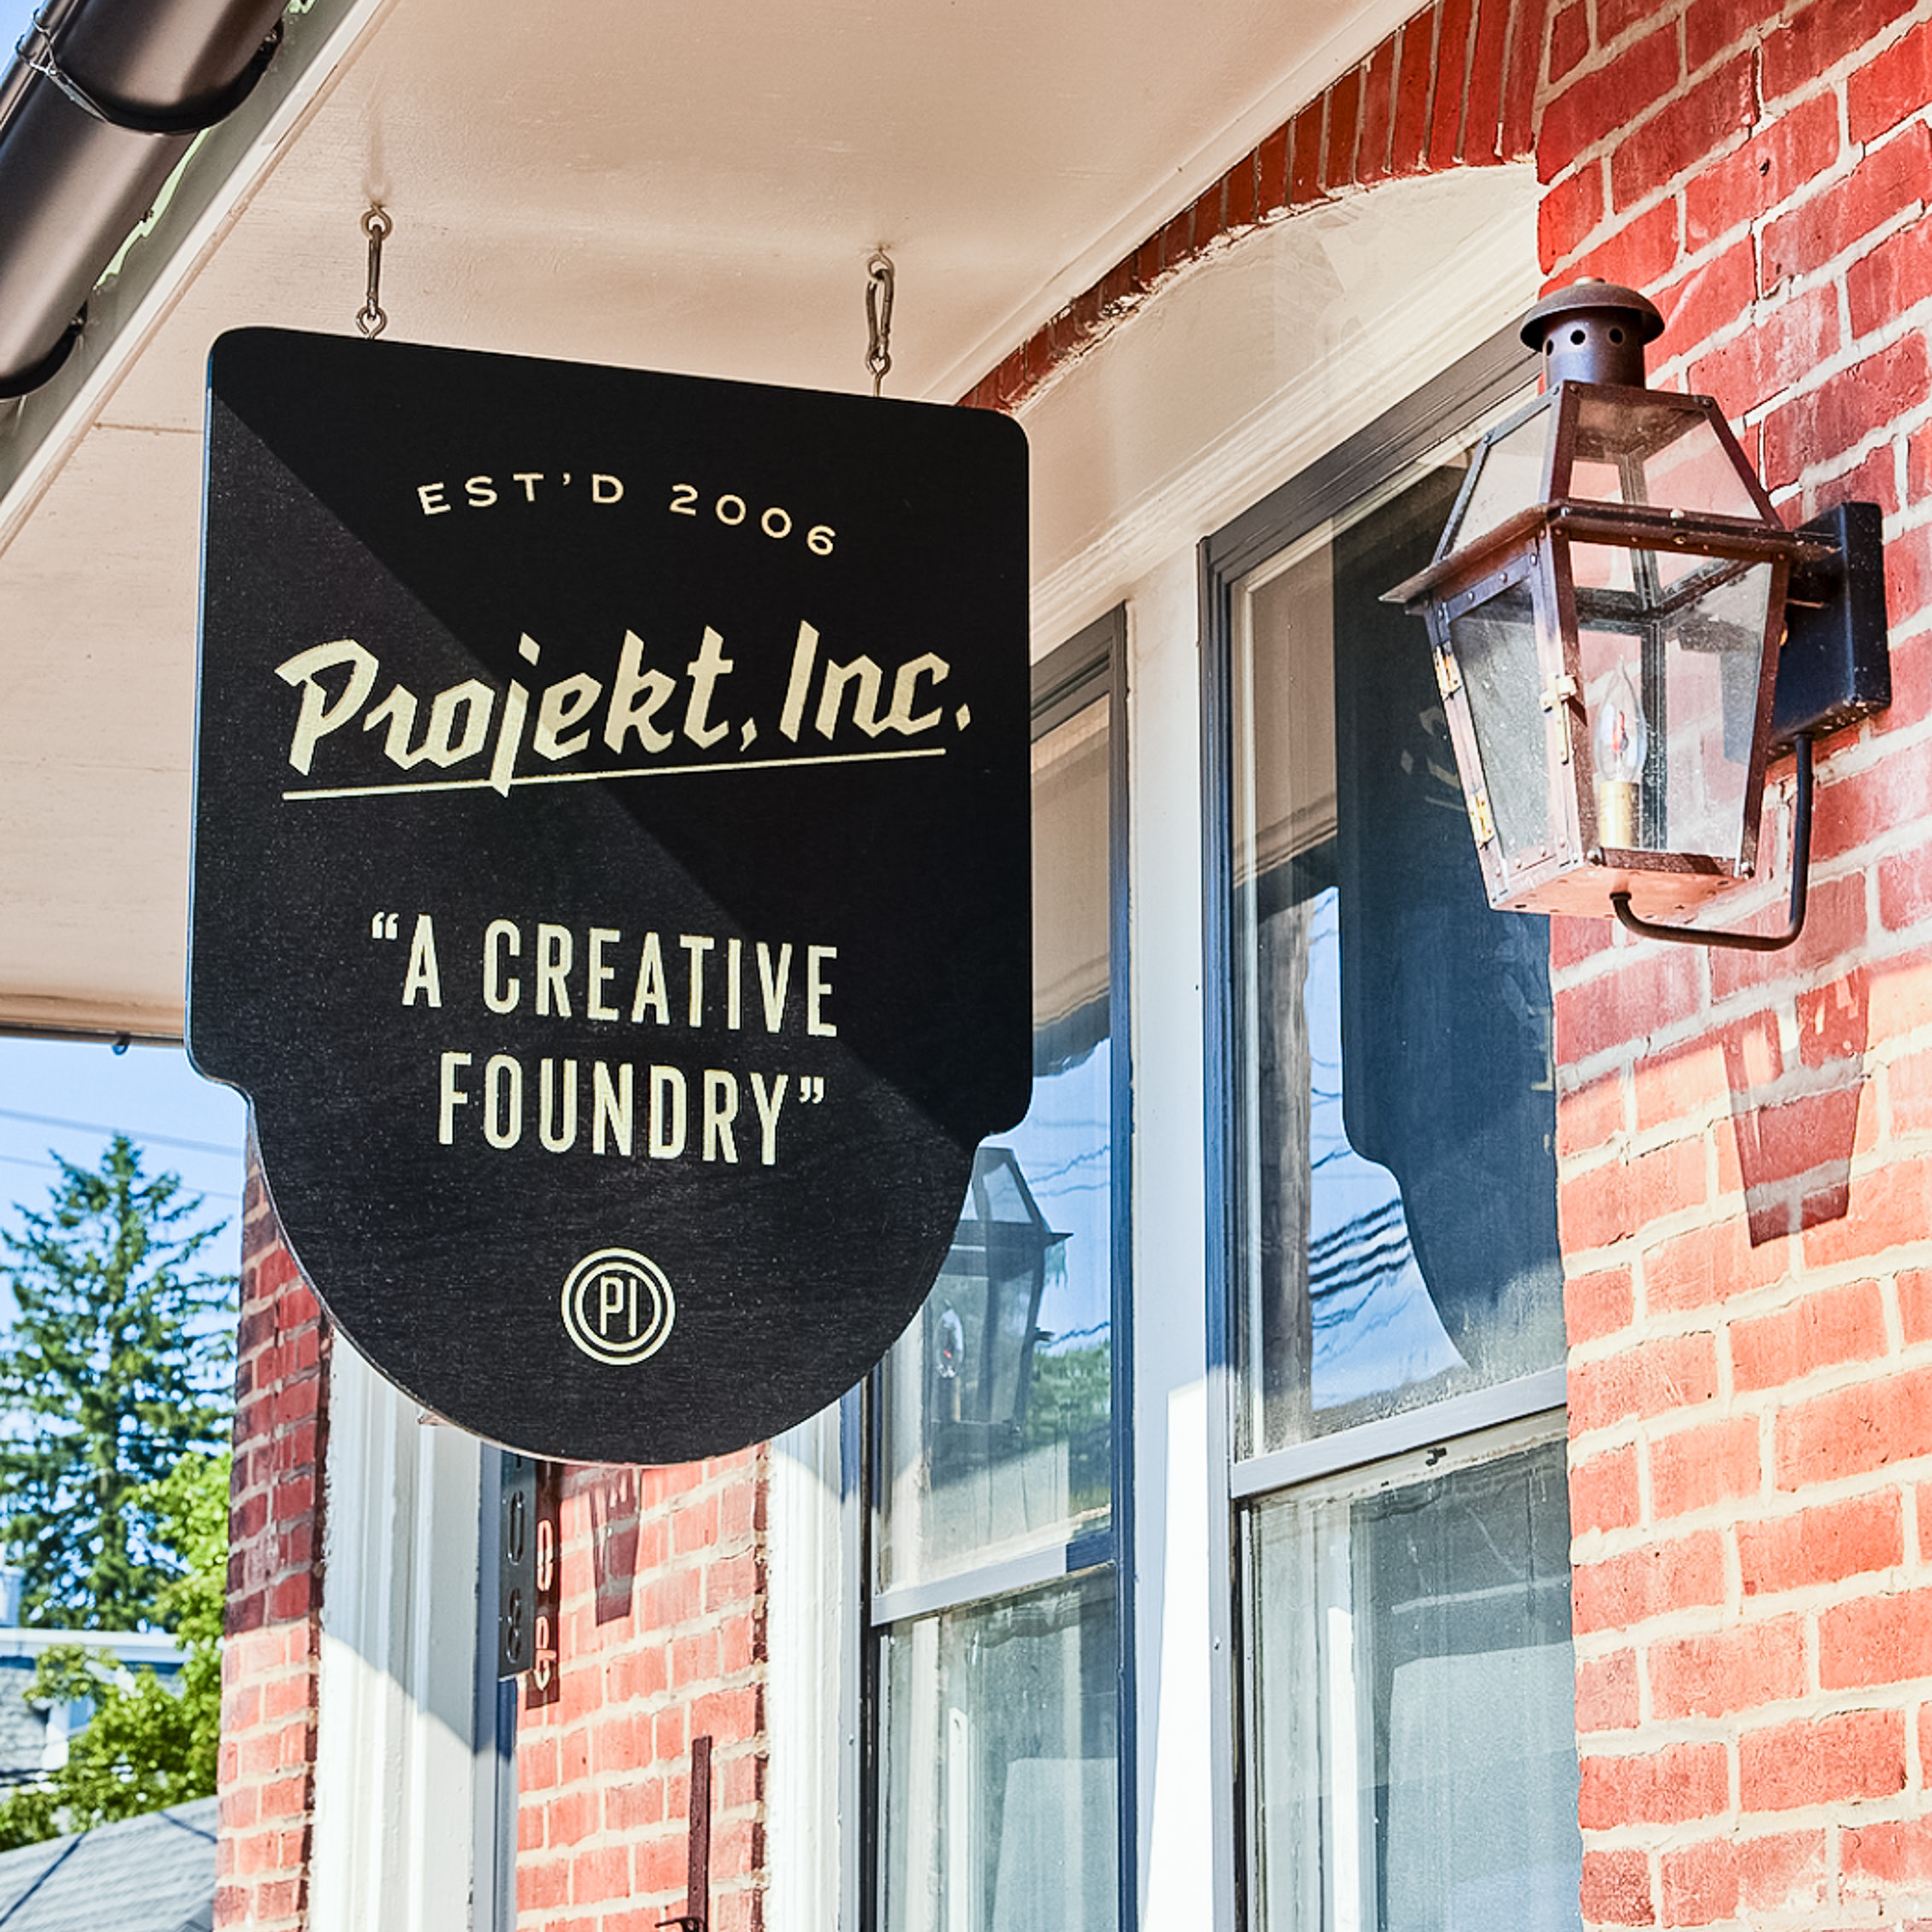 Suspended nodern black entrance sign for Projekt, a creative foundry in North Wales, PA